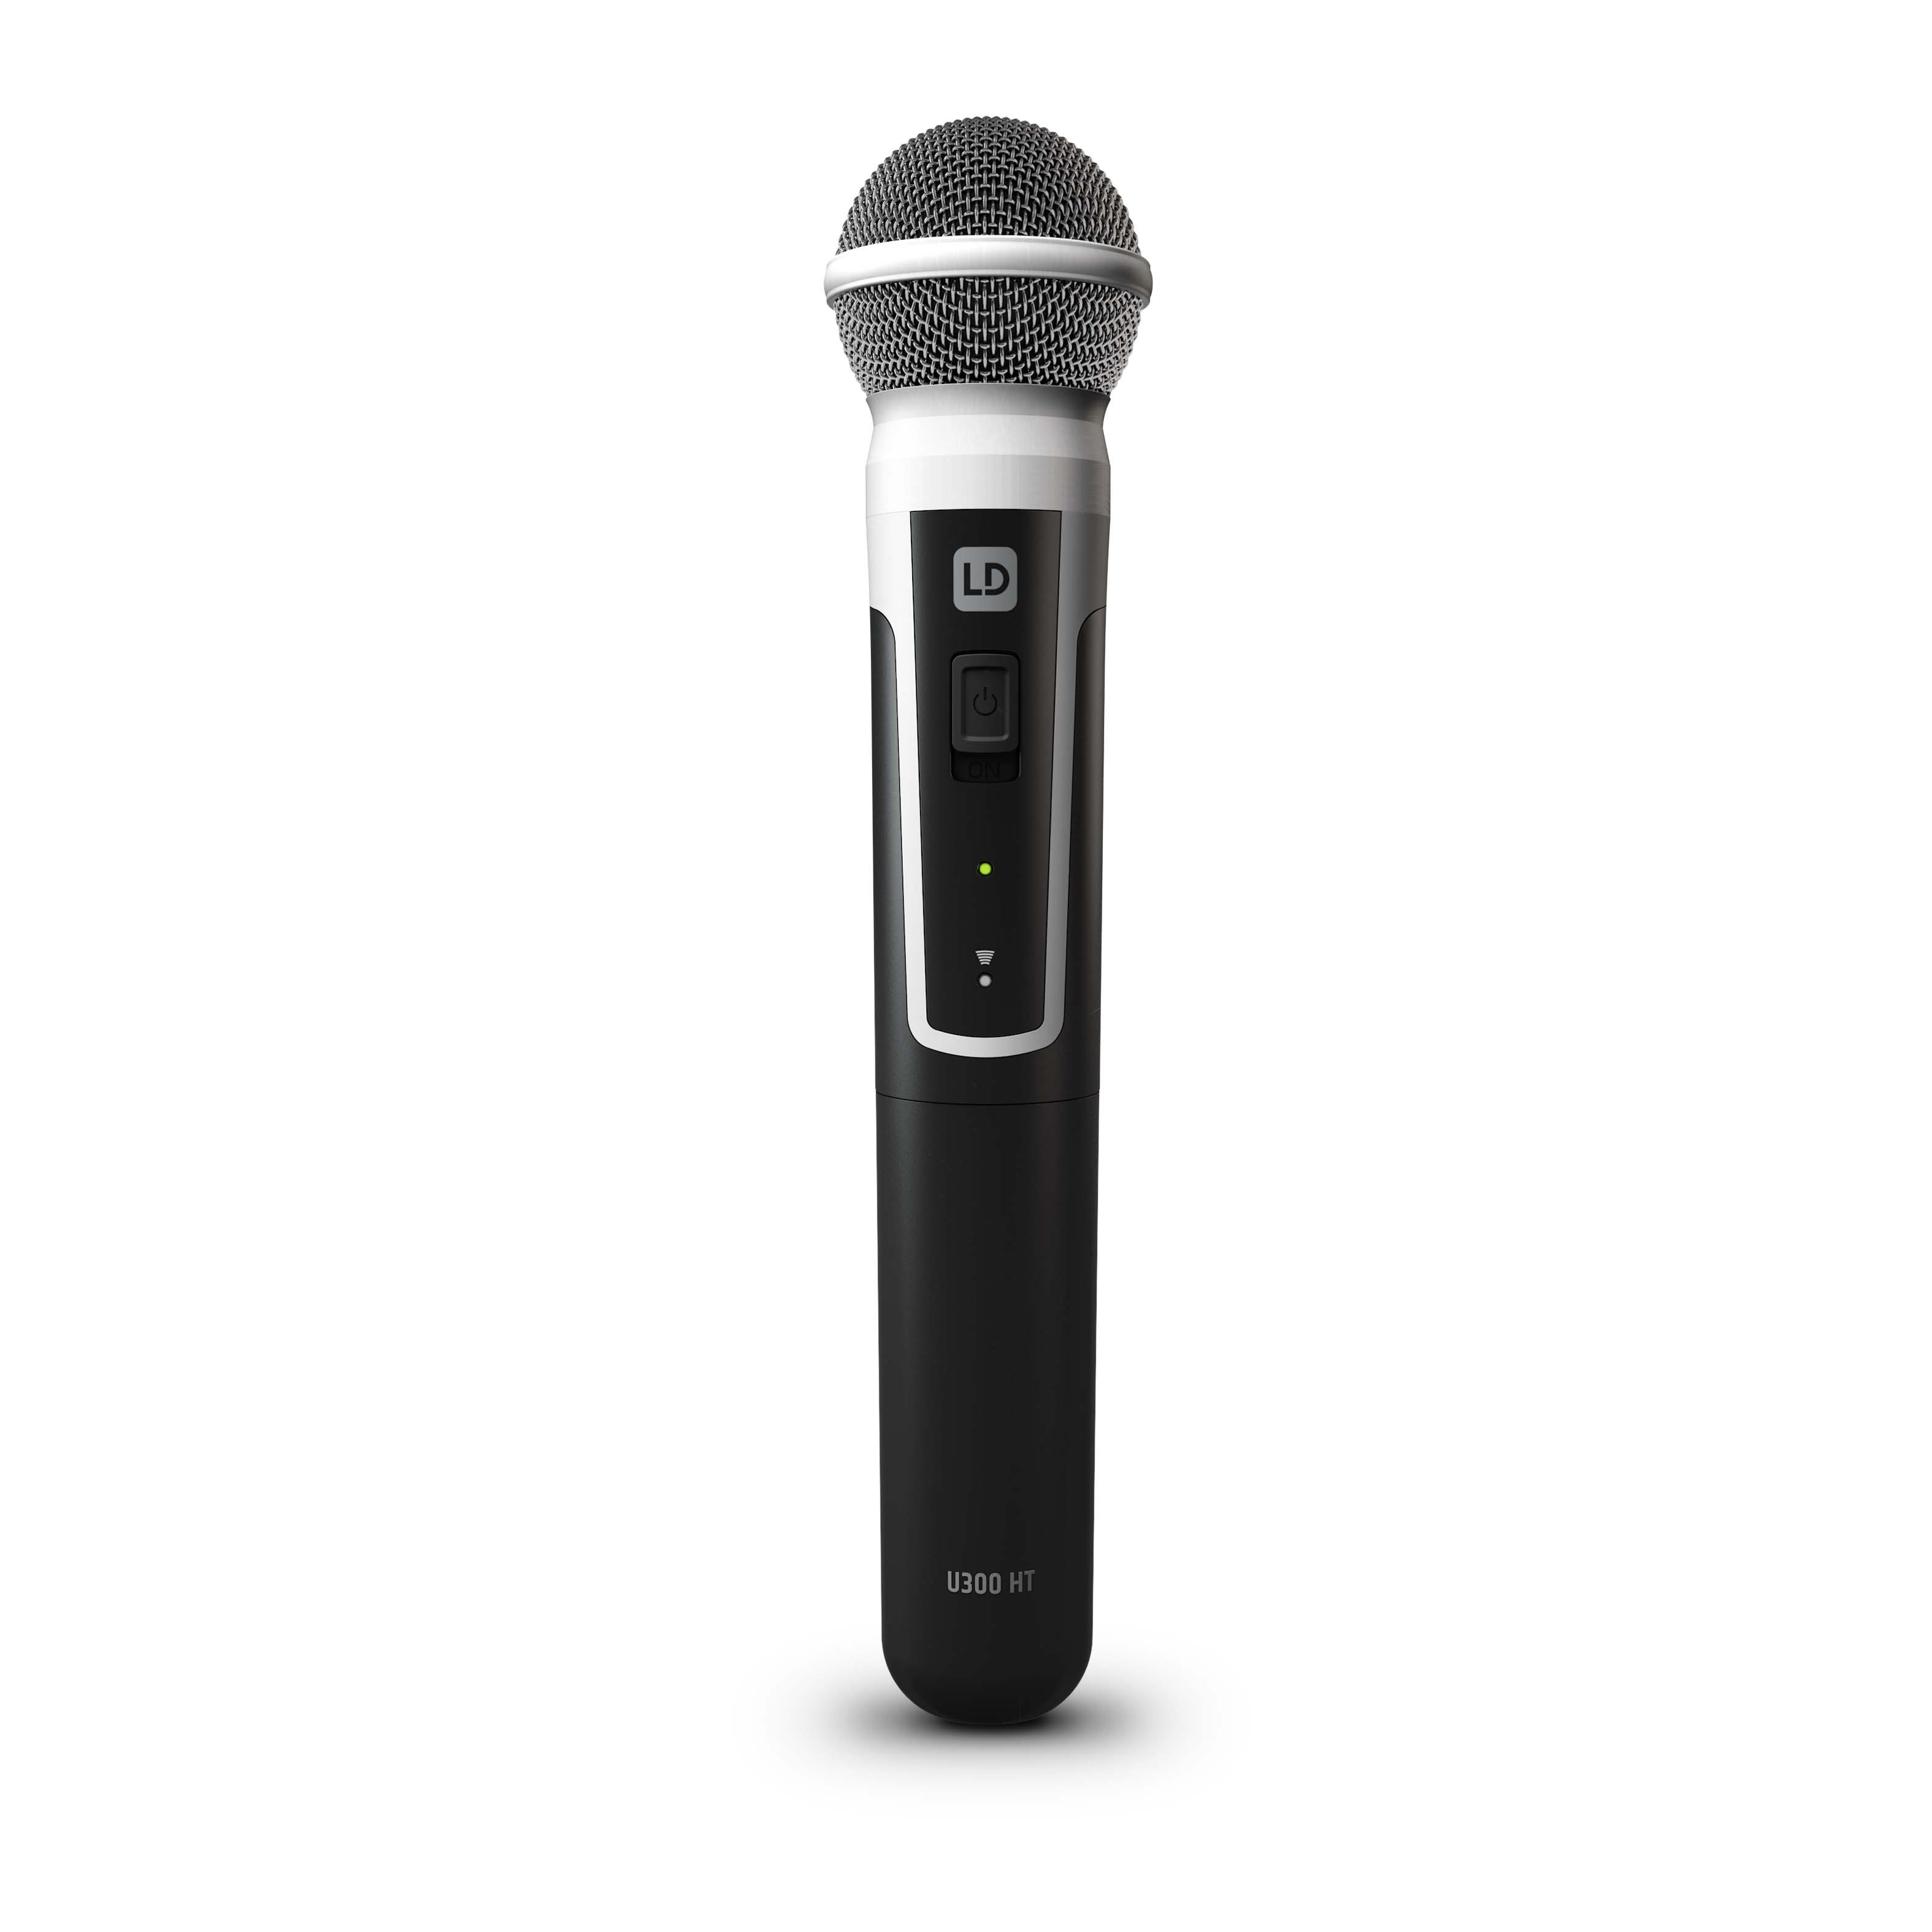 U305.1 HHD Wireless Microphone System with Dynamic Handheld Microphone